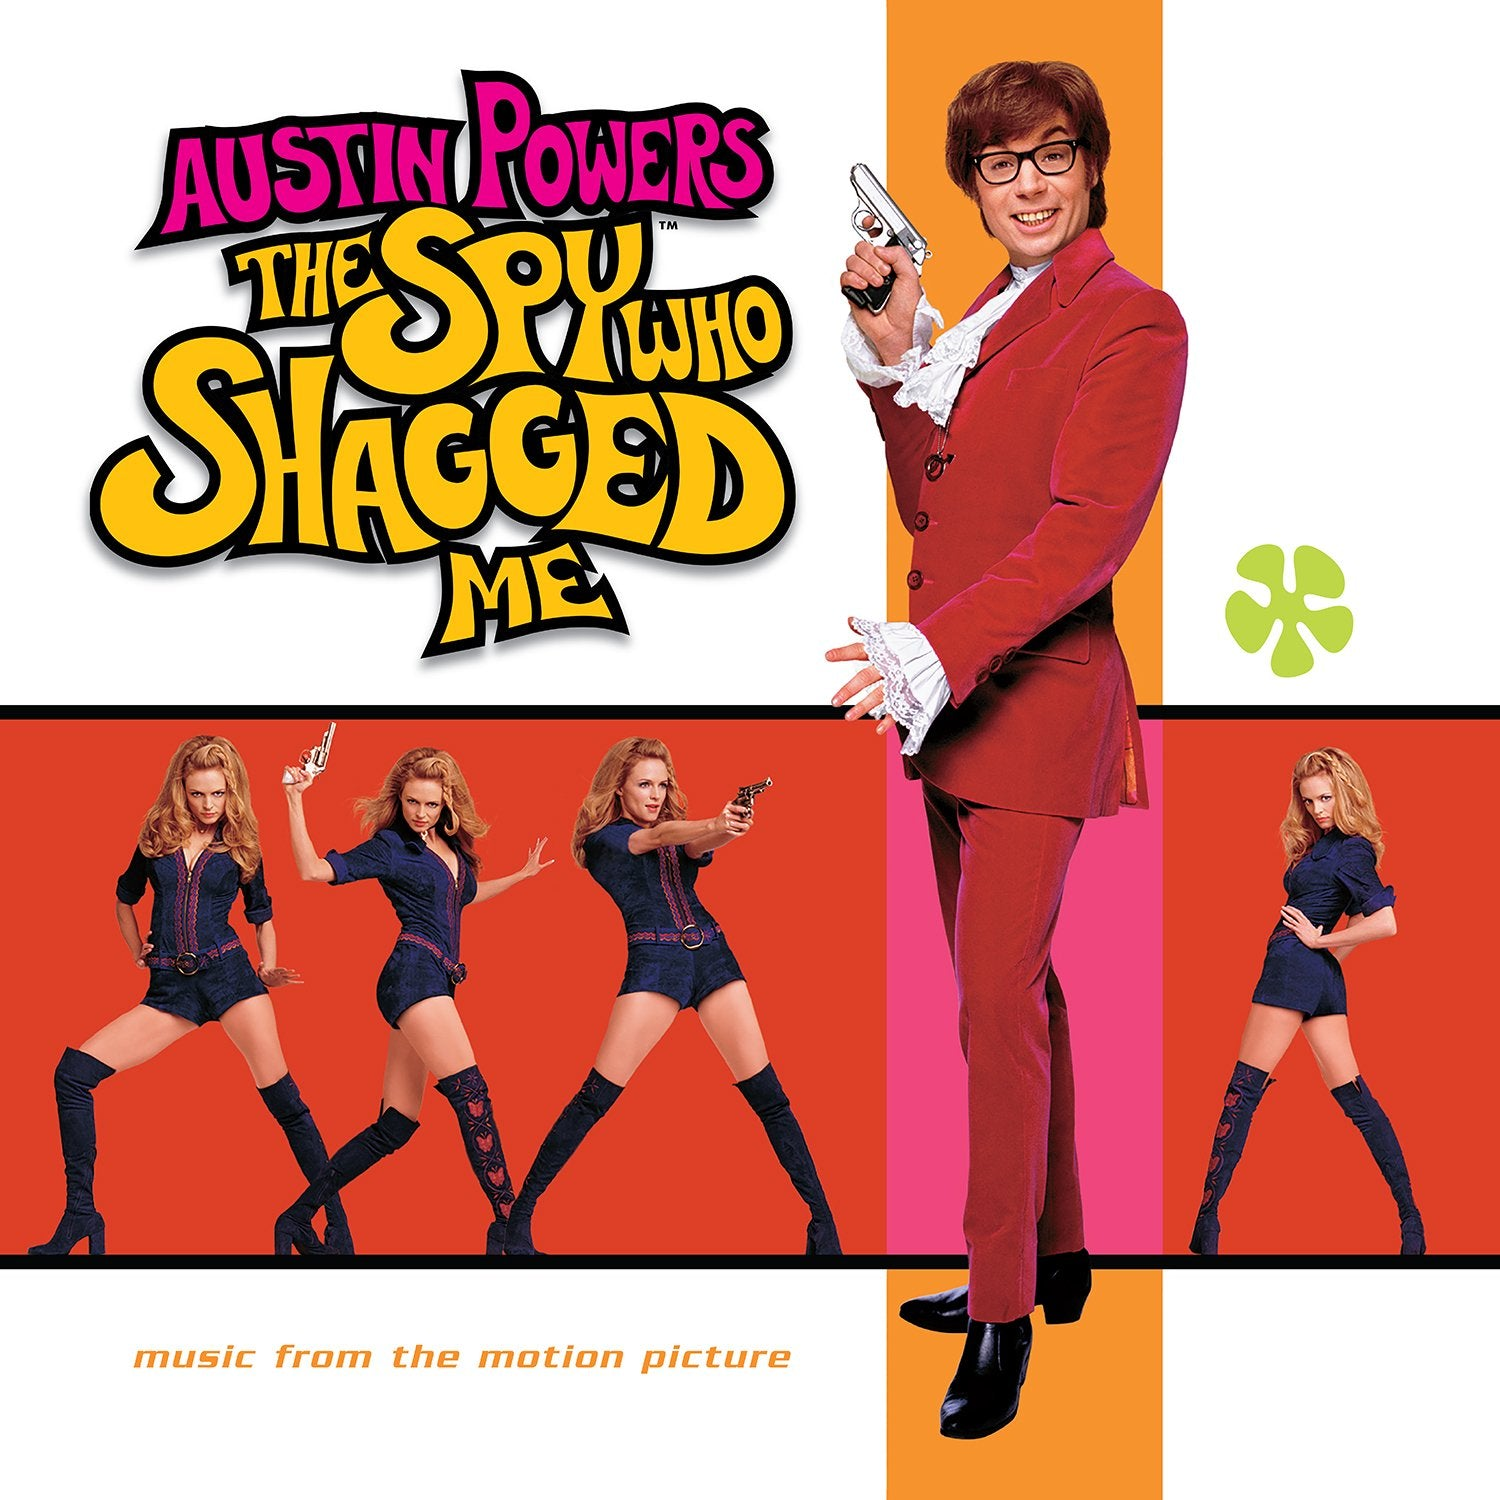 OST: Austin Powers: The Spy Who Shagged Me OST - Austin Powers: The Spy Who Shagged Me OST